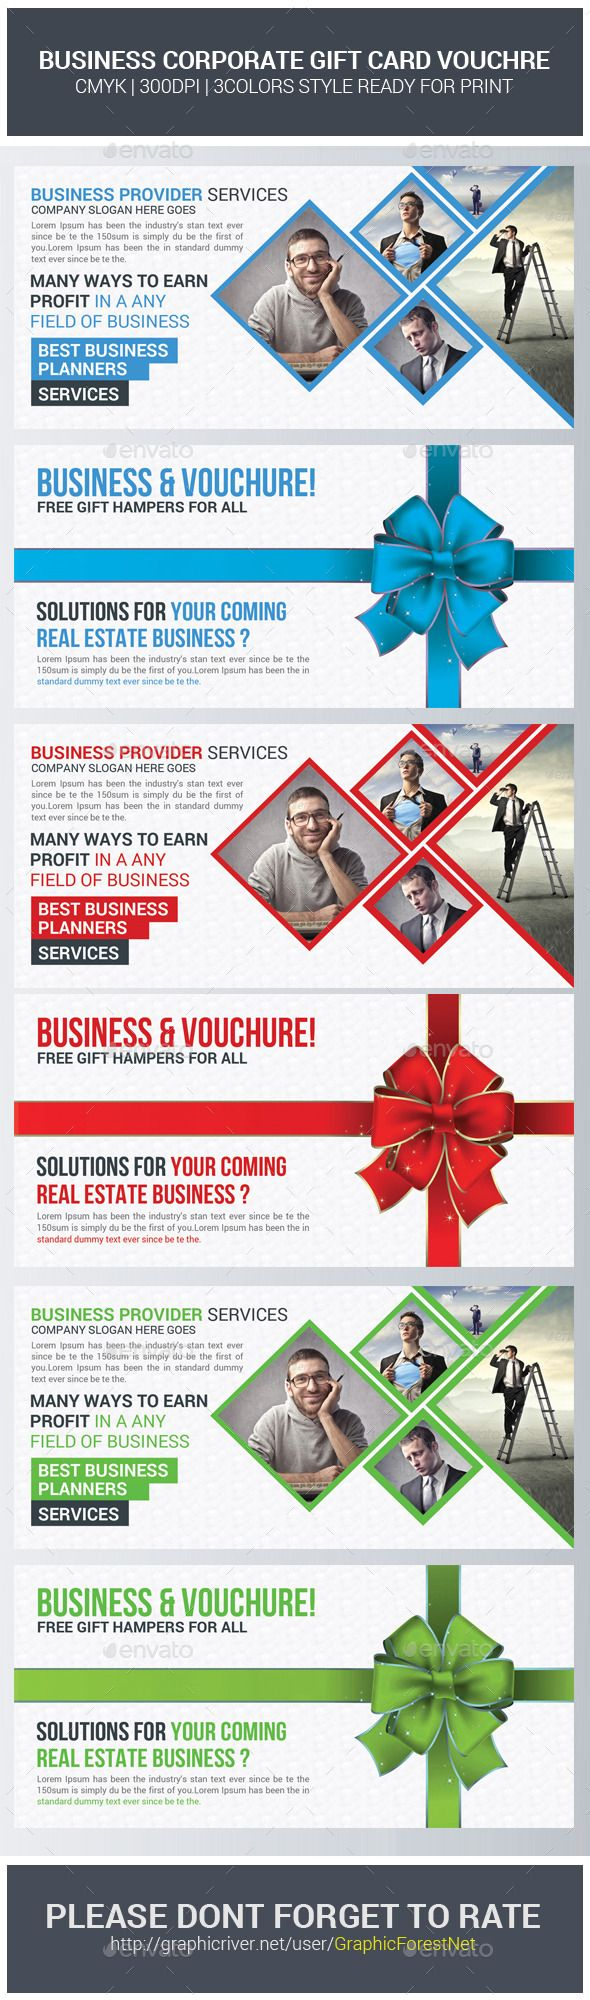 Corporate business gift voucher template corporate business corporate business gift voucher template magicingreecefo Image collections